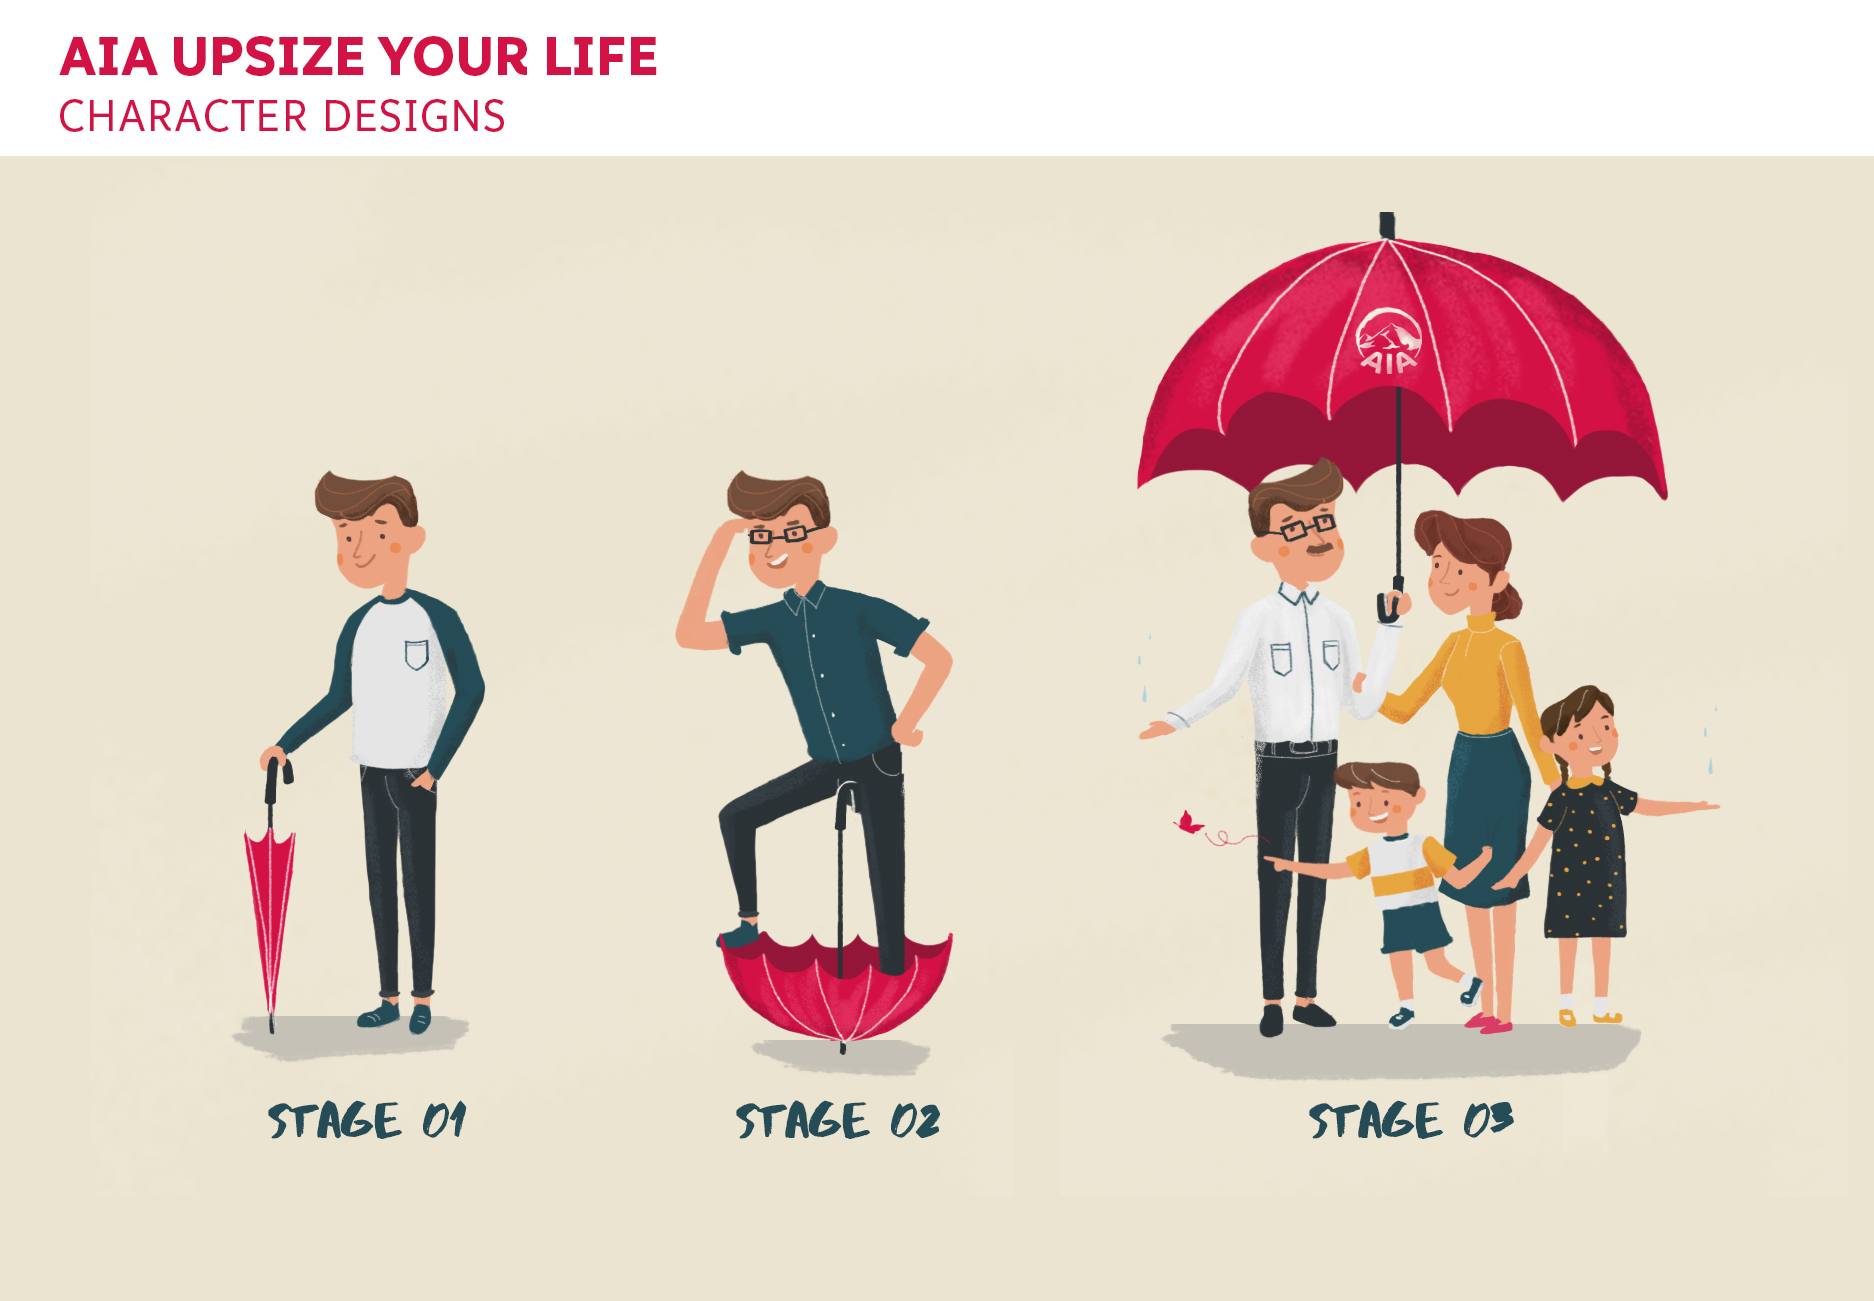 AIA Upsize Your Life (Character Design).jpg